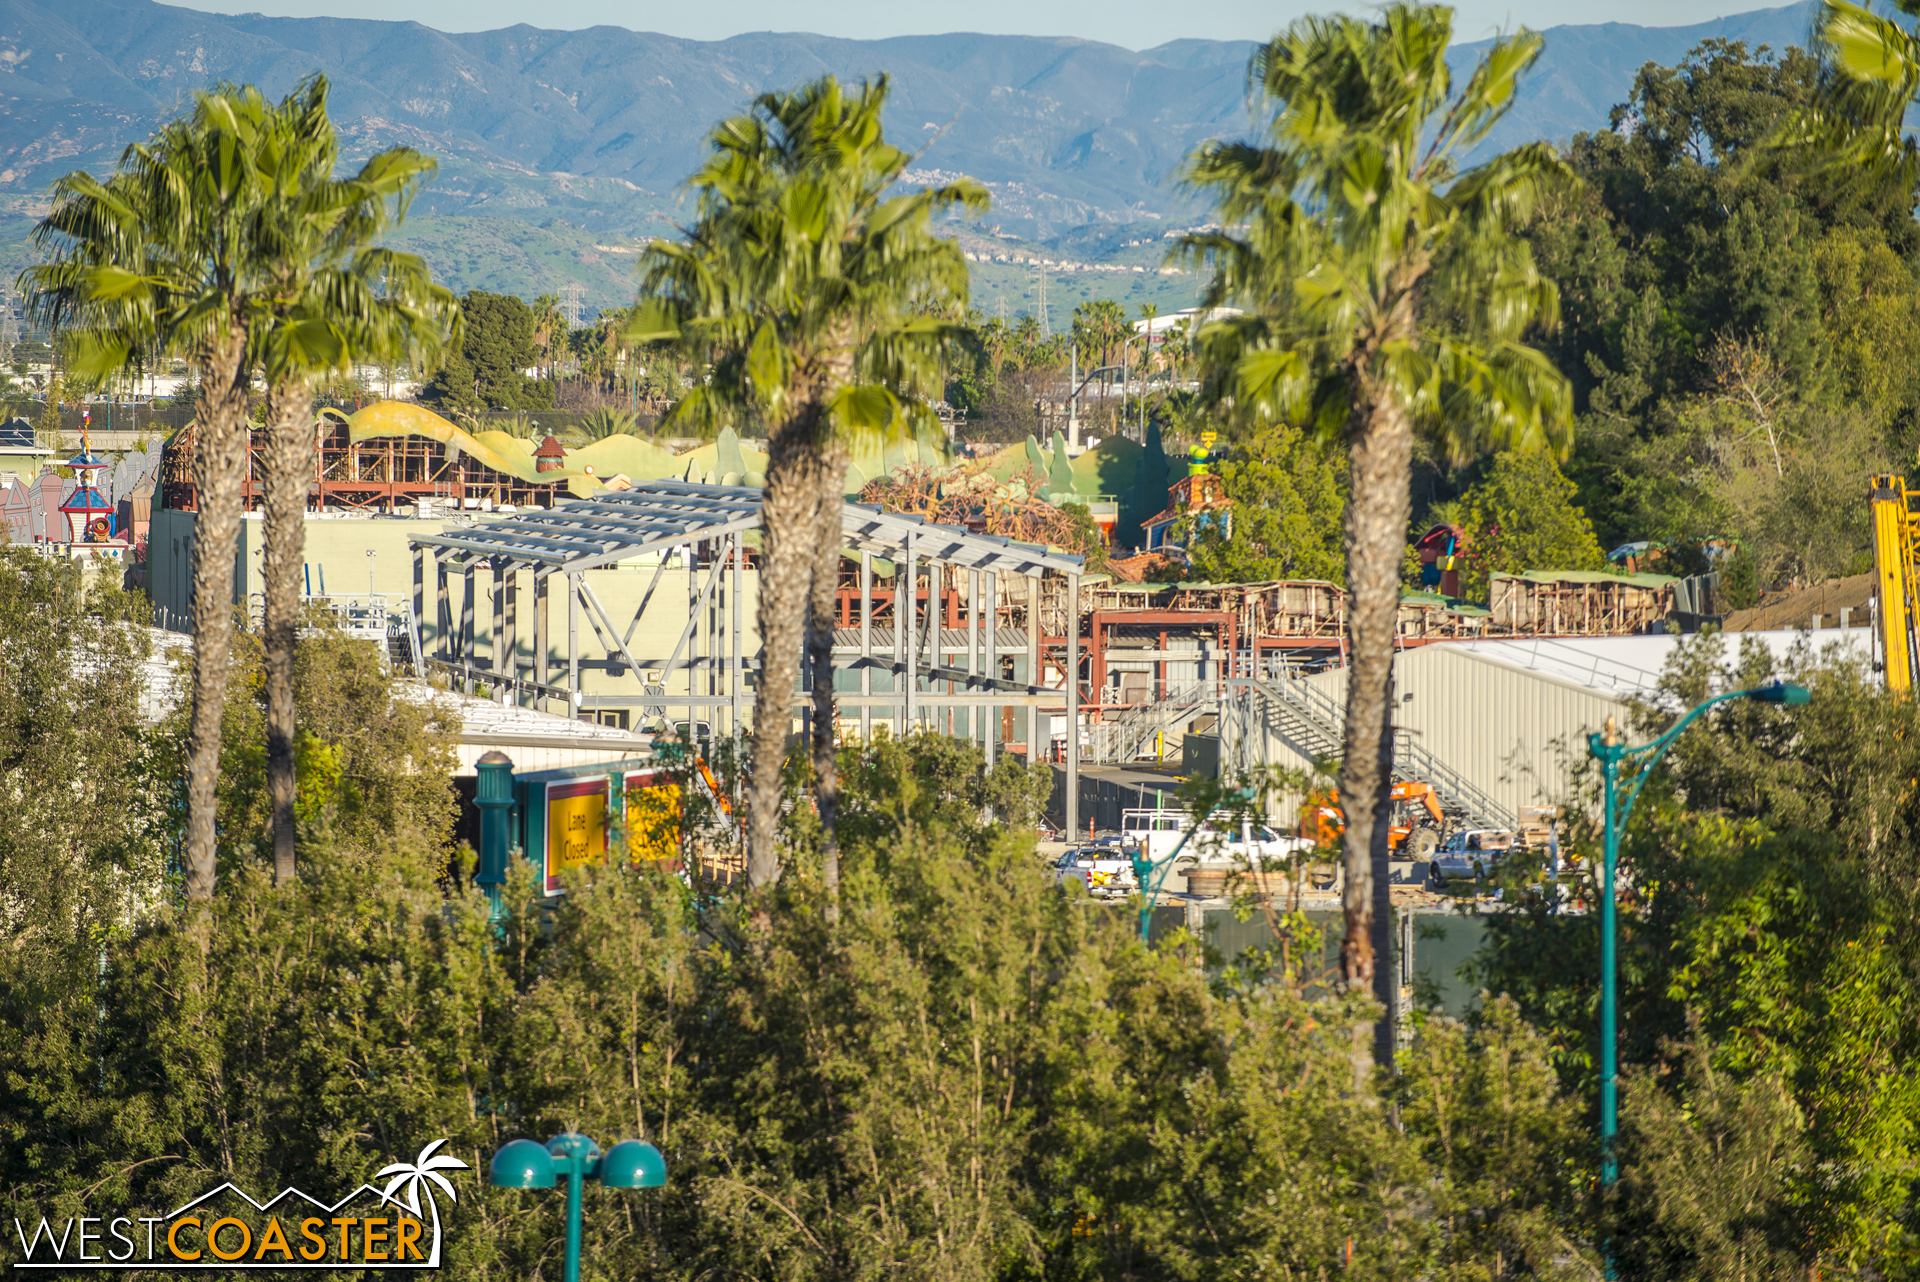 In the back of the site, near Mickey's Toontown, that giant shed building looks nearly fully framed.